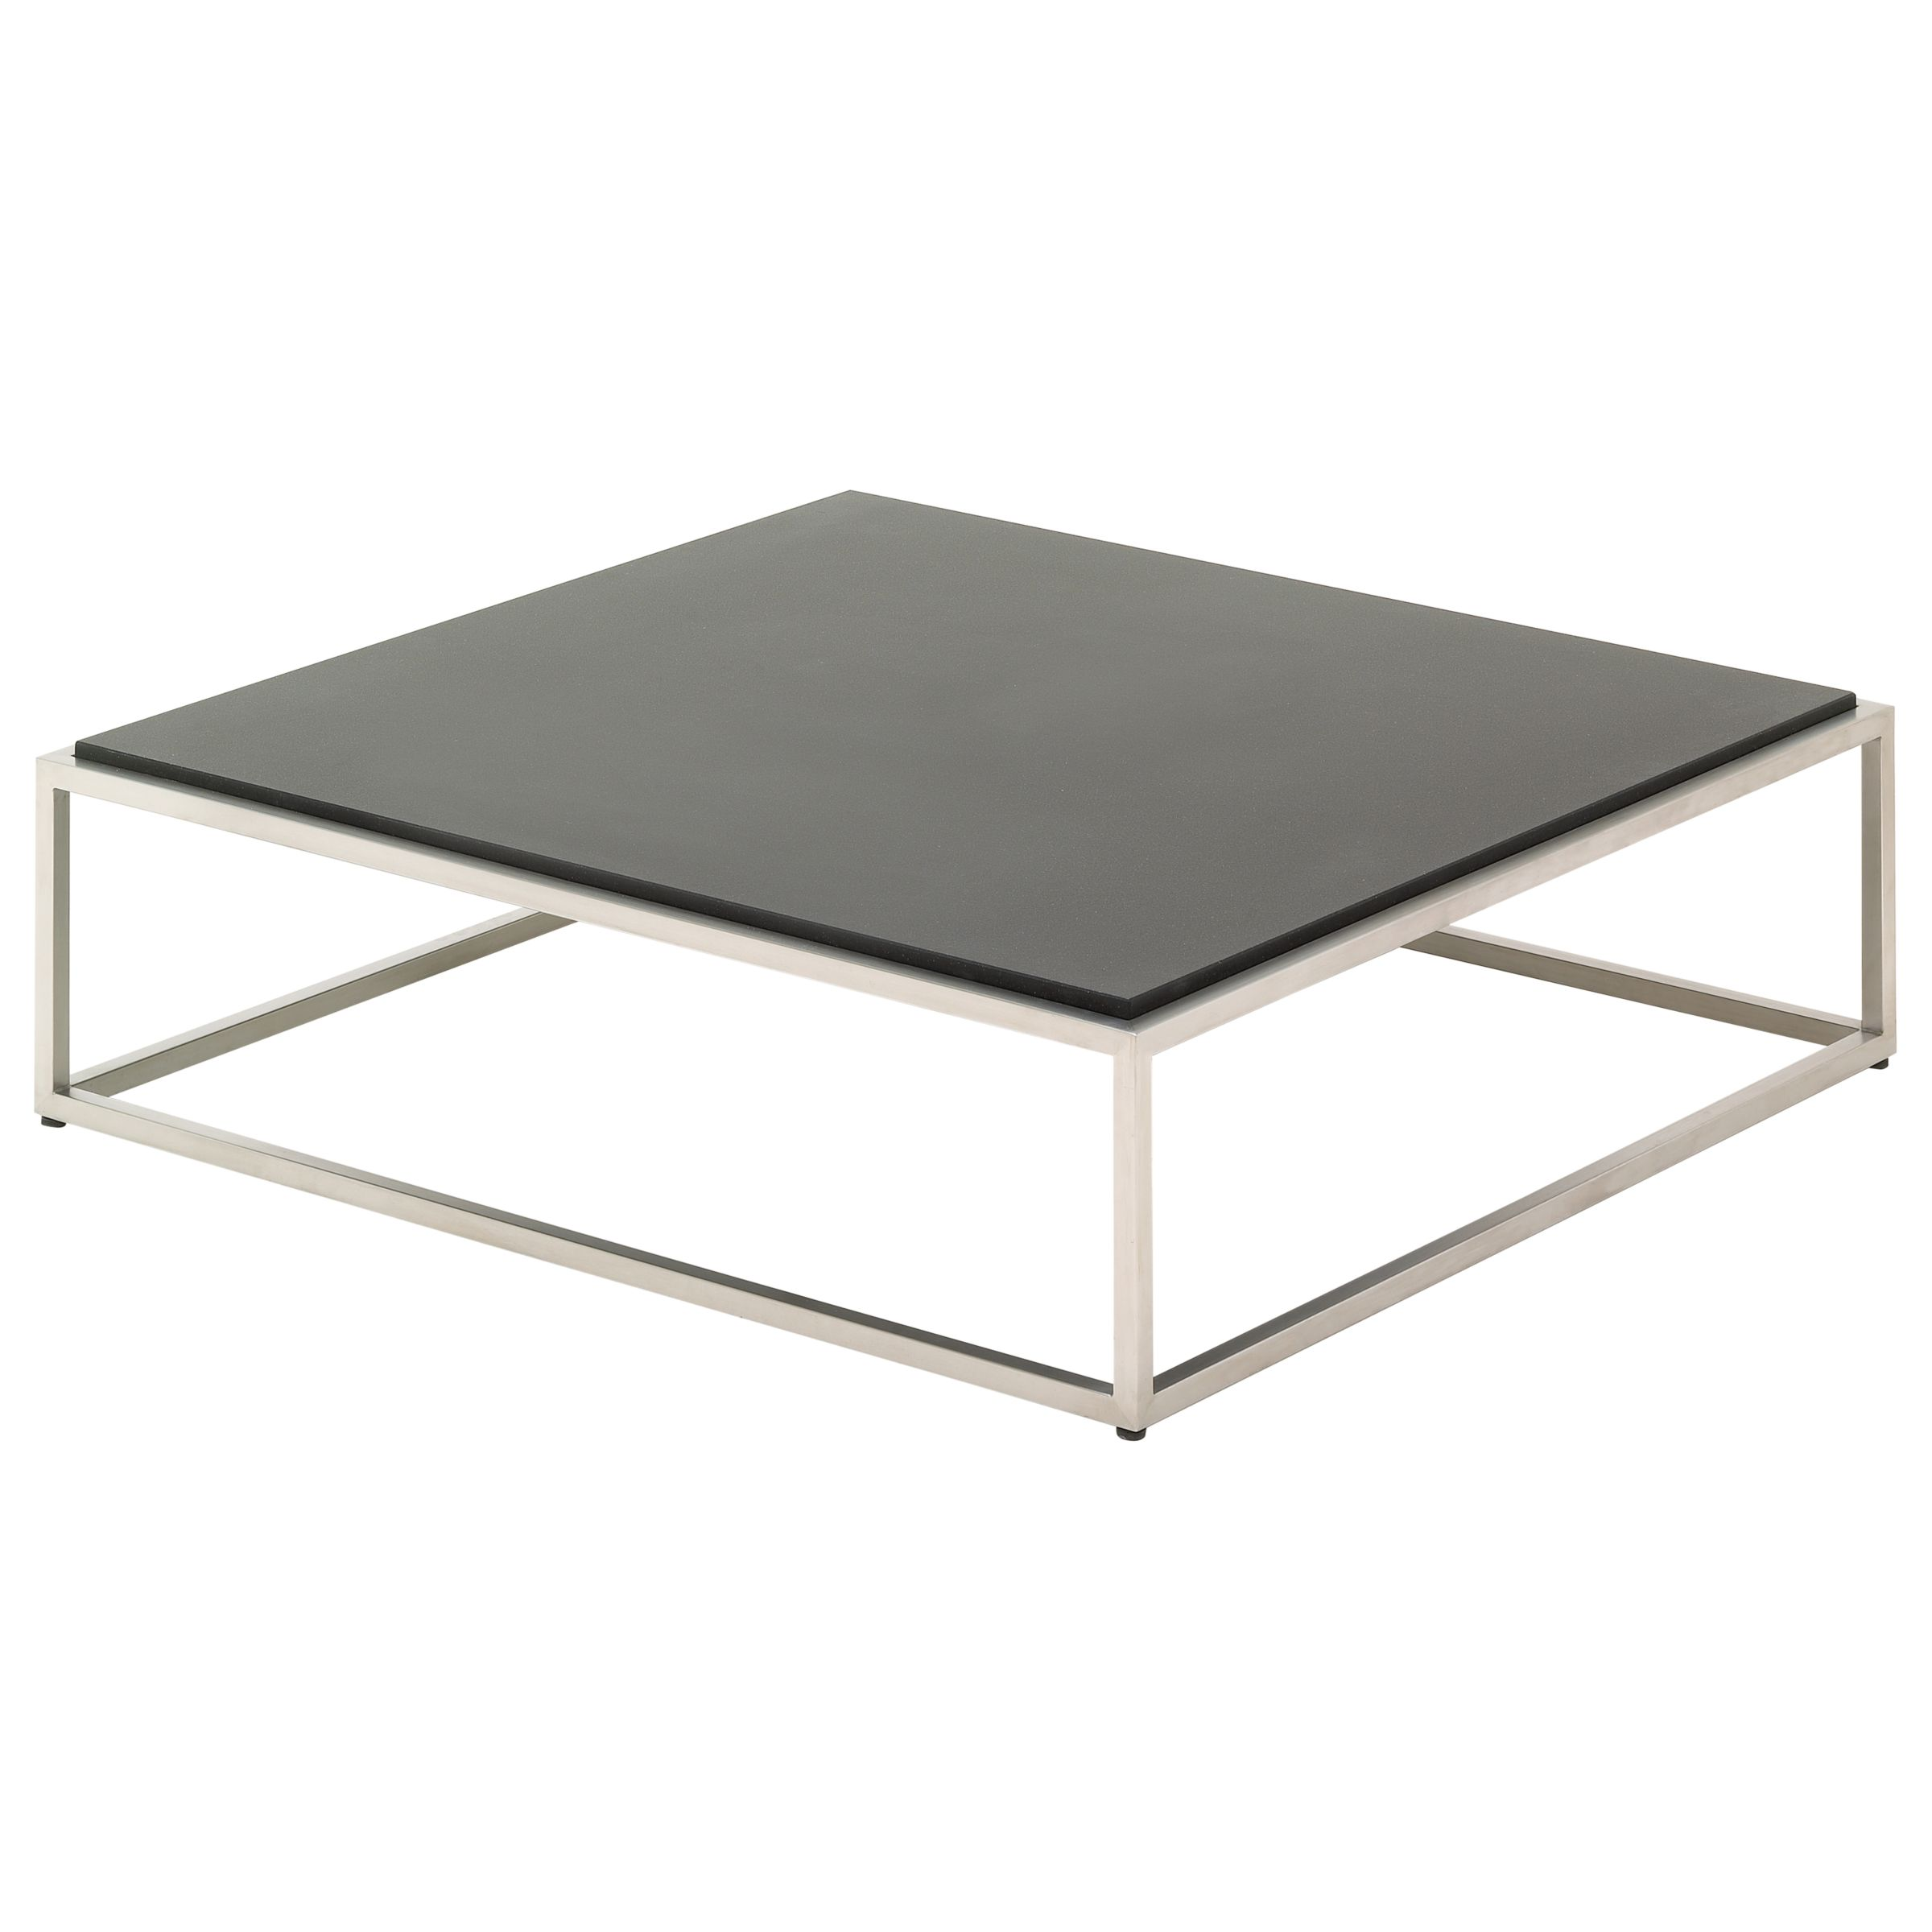 Gloster Cloud Square Outdoor Coffee Table with Quartz Top, Onyx